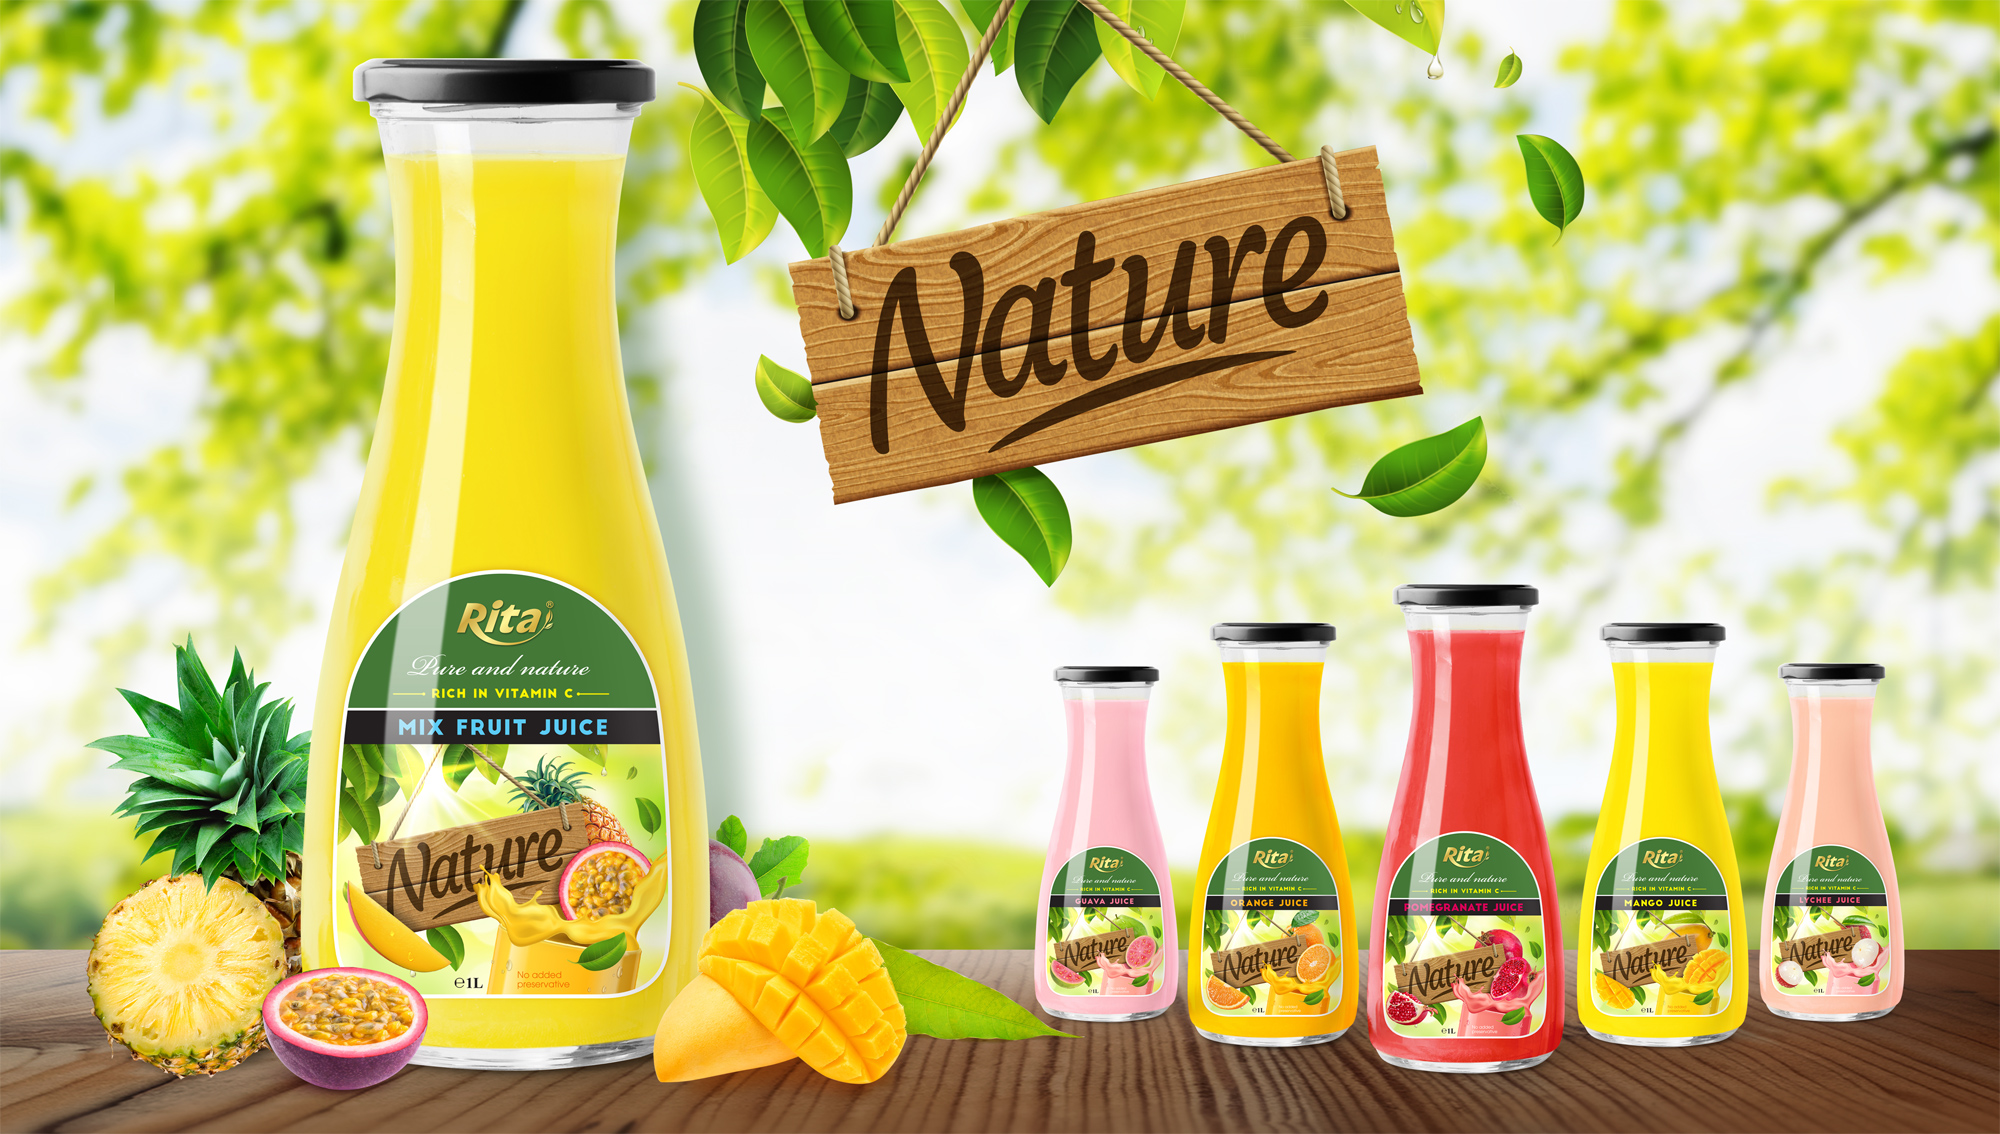 Fruit juice Glass bottle 1L 02